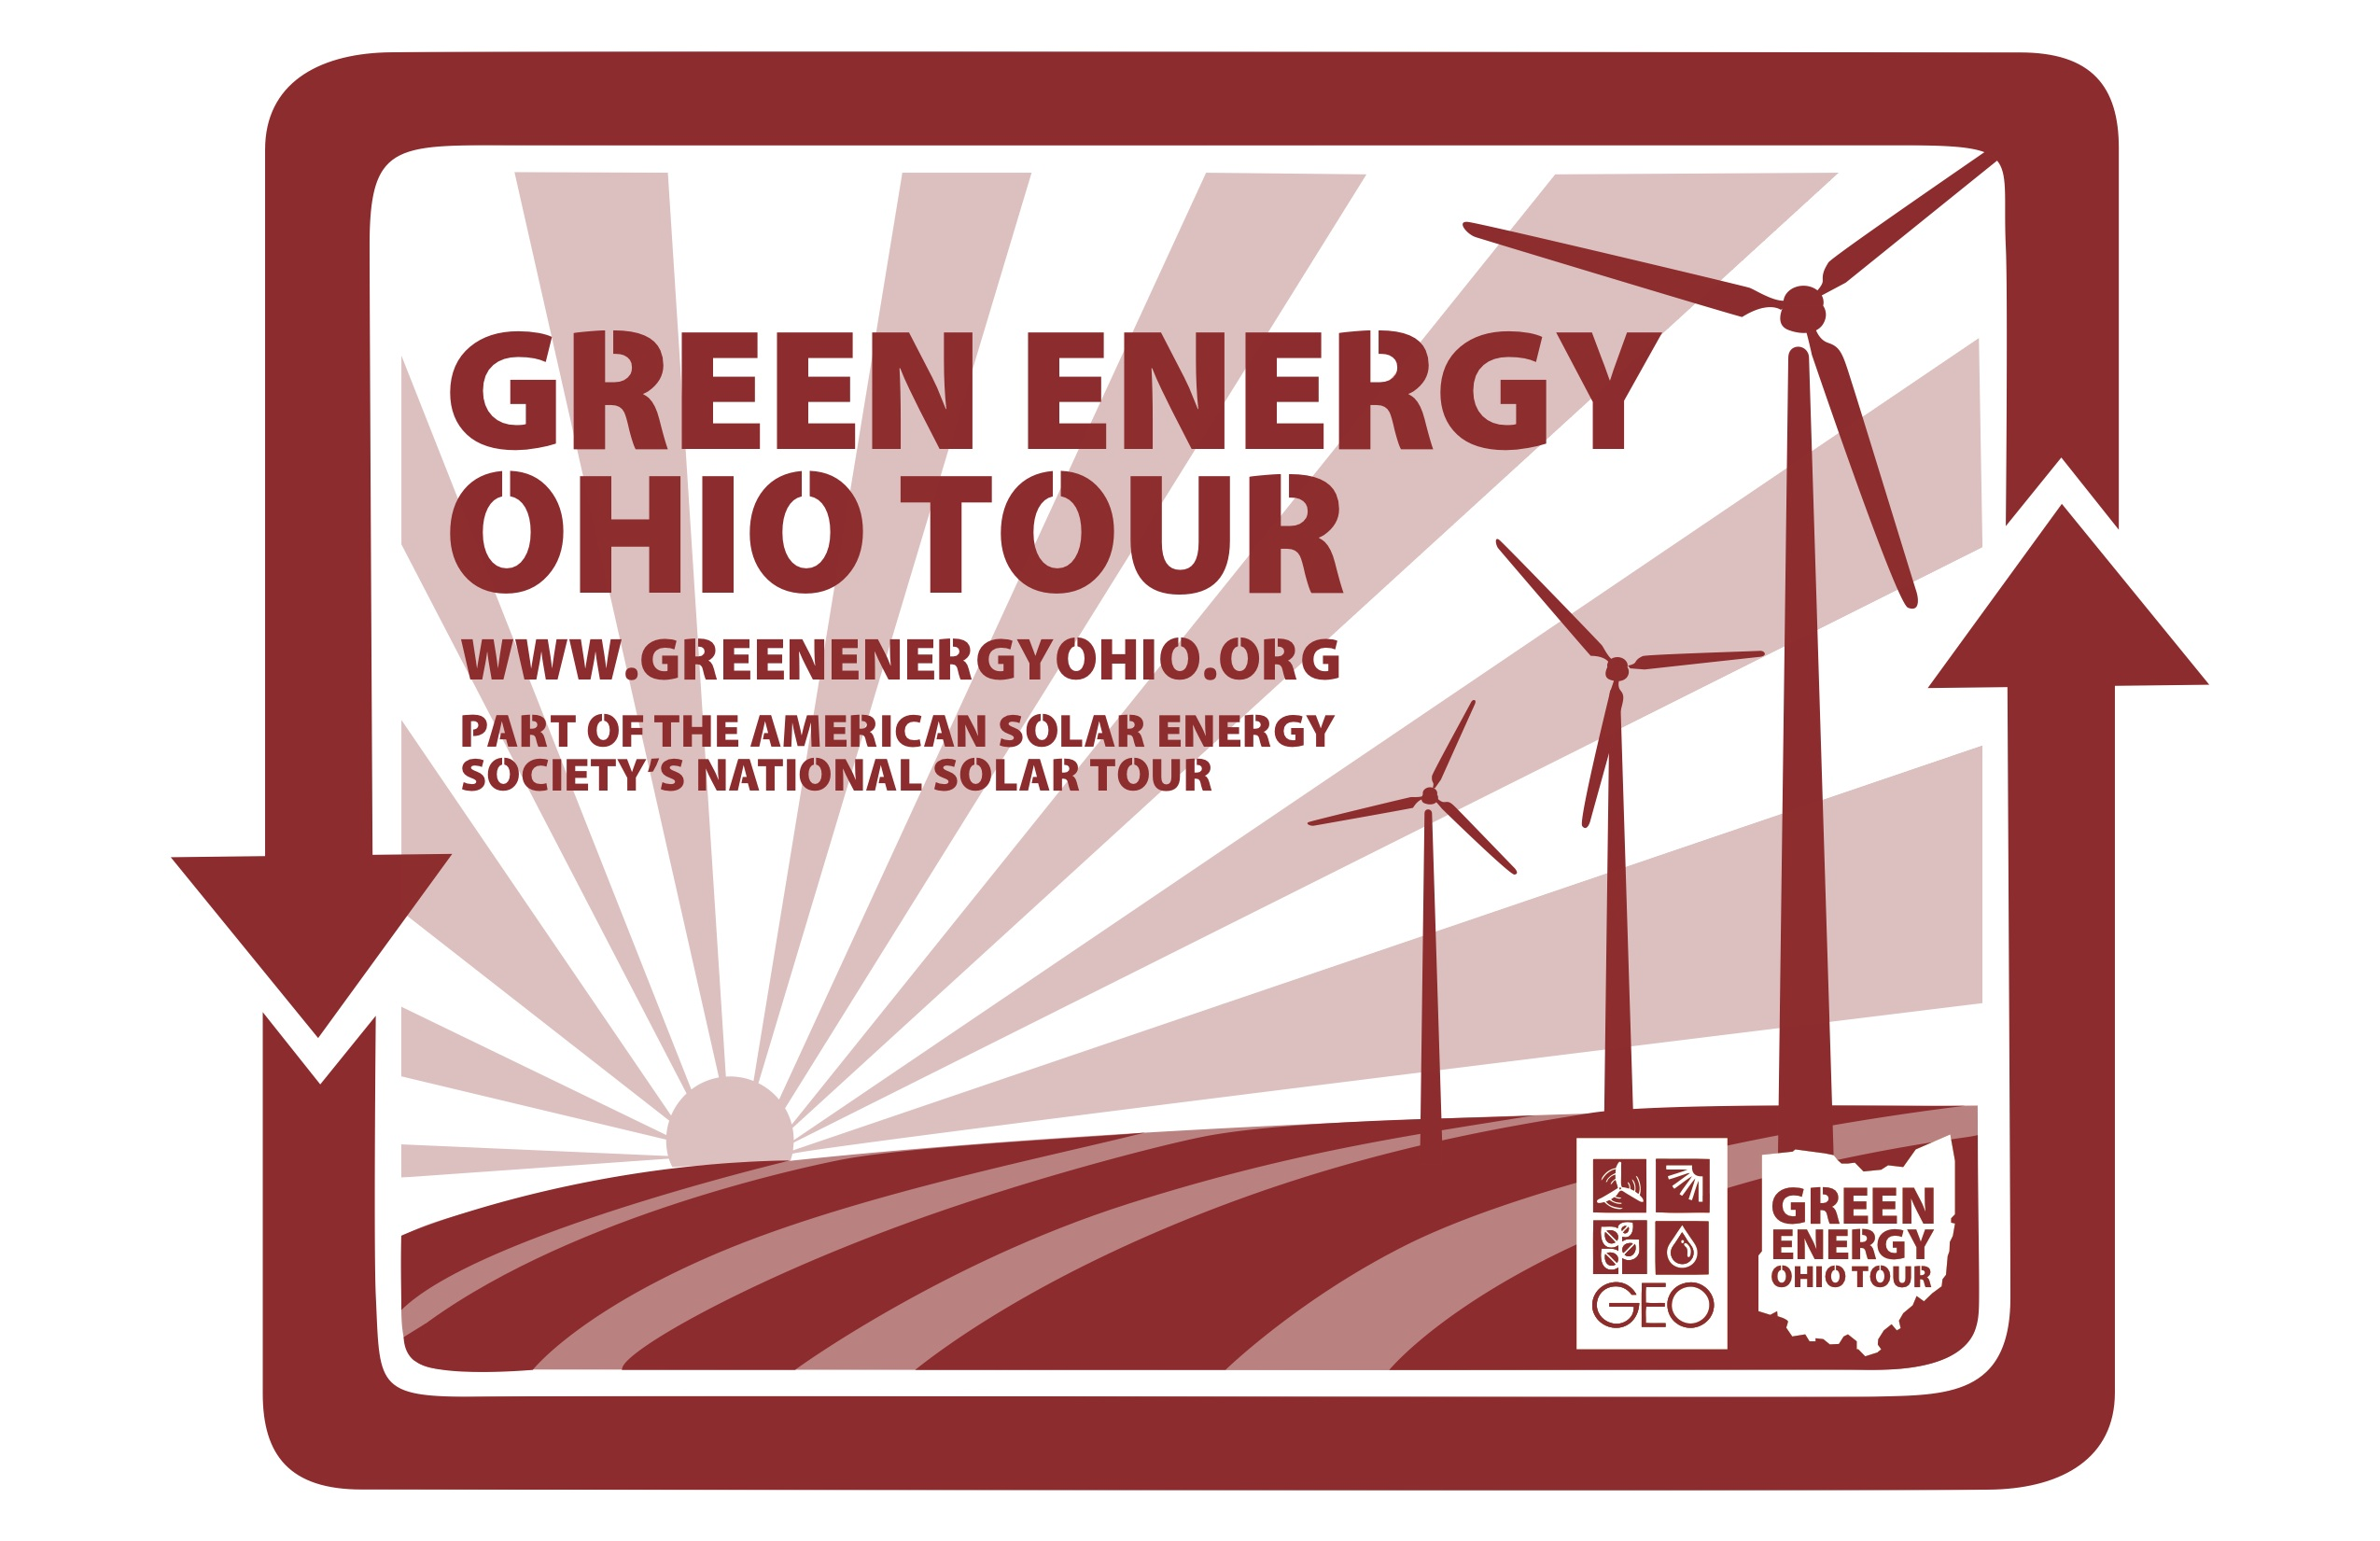 2011 Green Energy Ohio Tour Pic